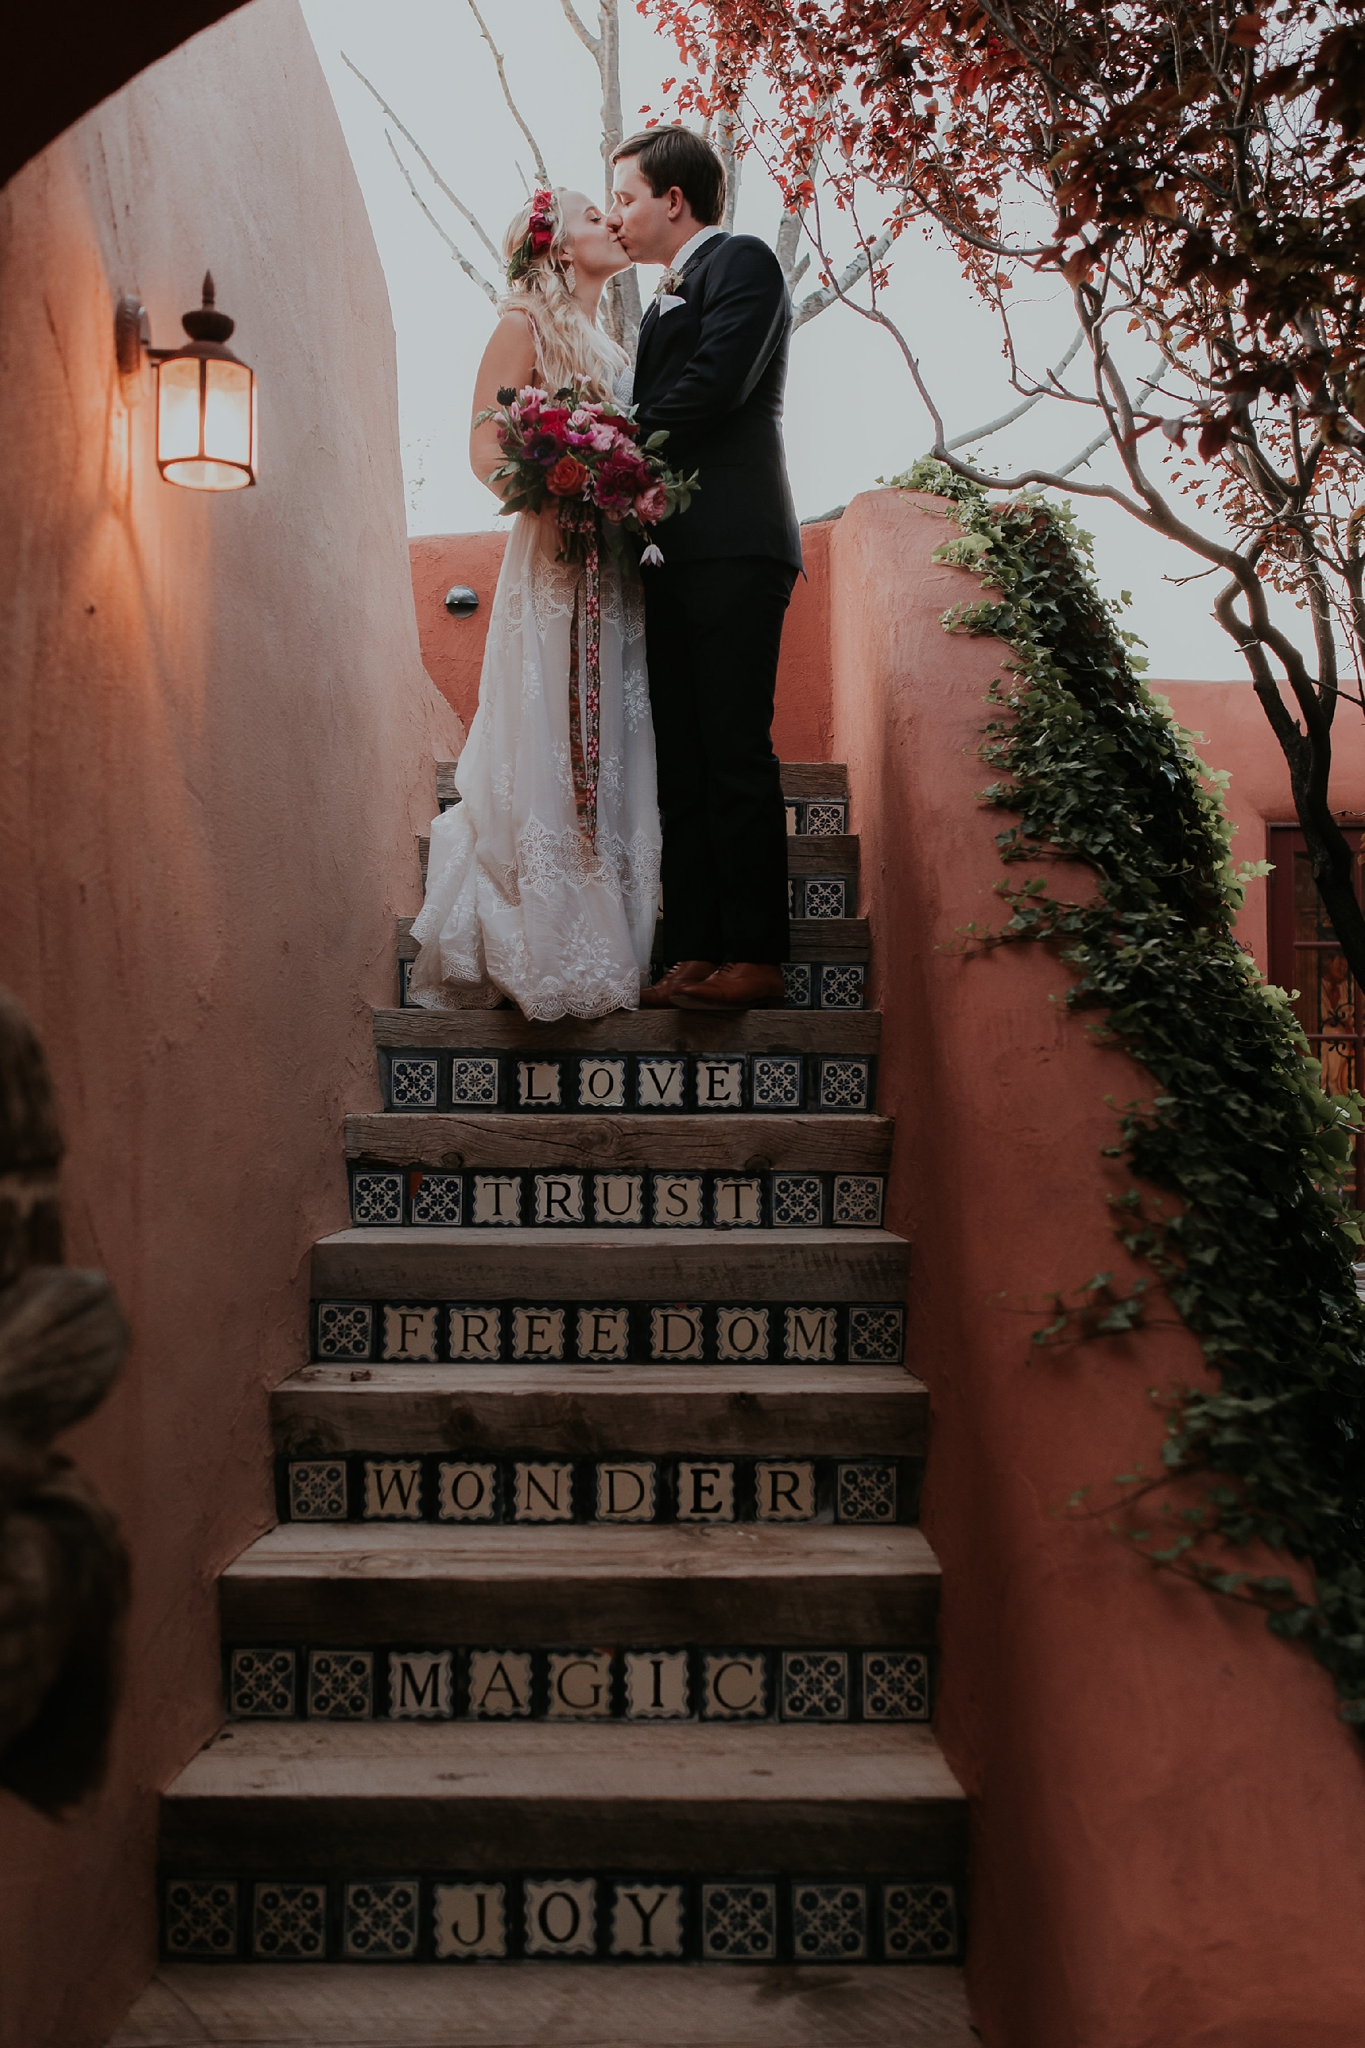 Alicia+lucia+photography+-+albuquerque+wedding+photographer+-+santa+fe+wedding+photography+-+new+mexico+wedding+photographer+-+new+mexico+wedding+-+wedding+venues+-+new+mexico+wedding+venues+-+colorado+wedding+venues_0098.jpg